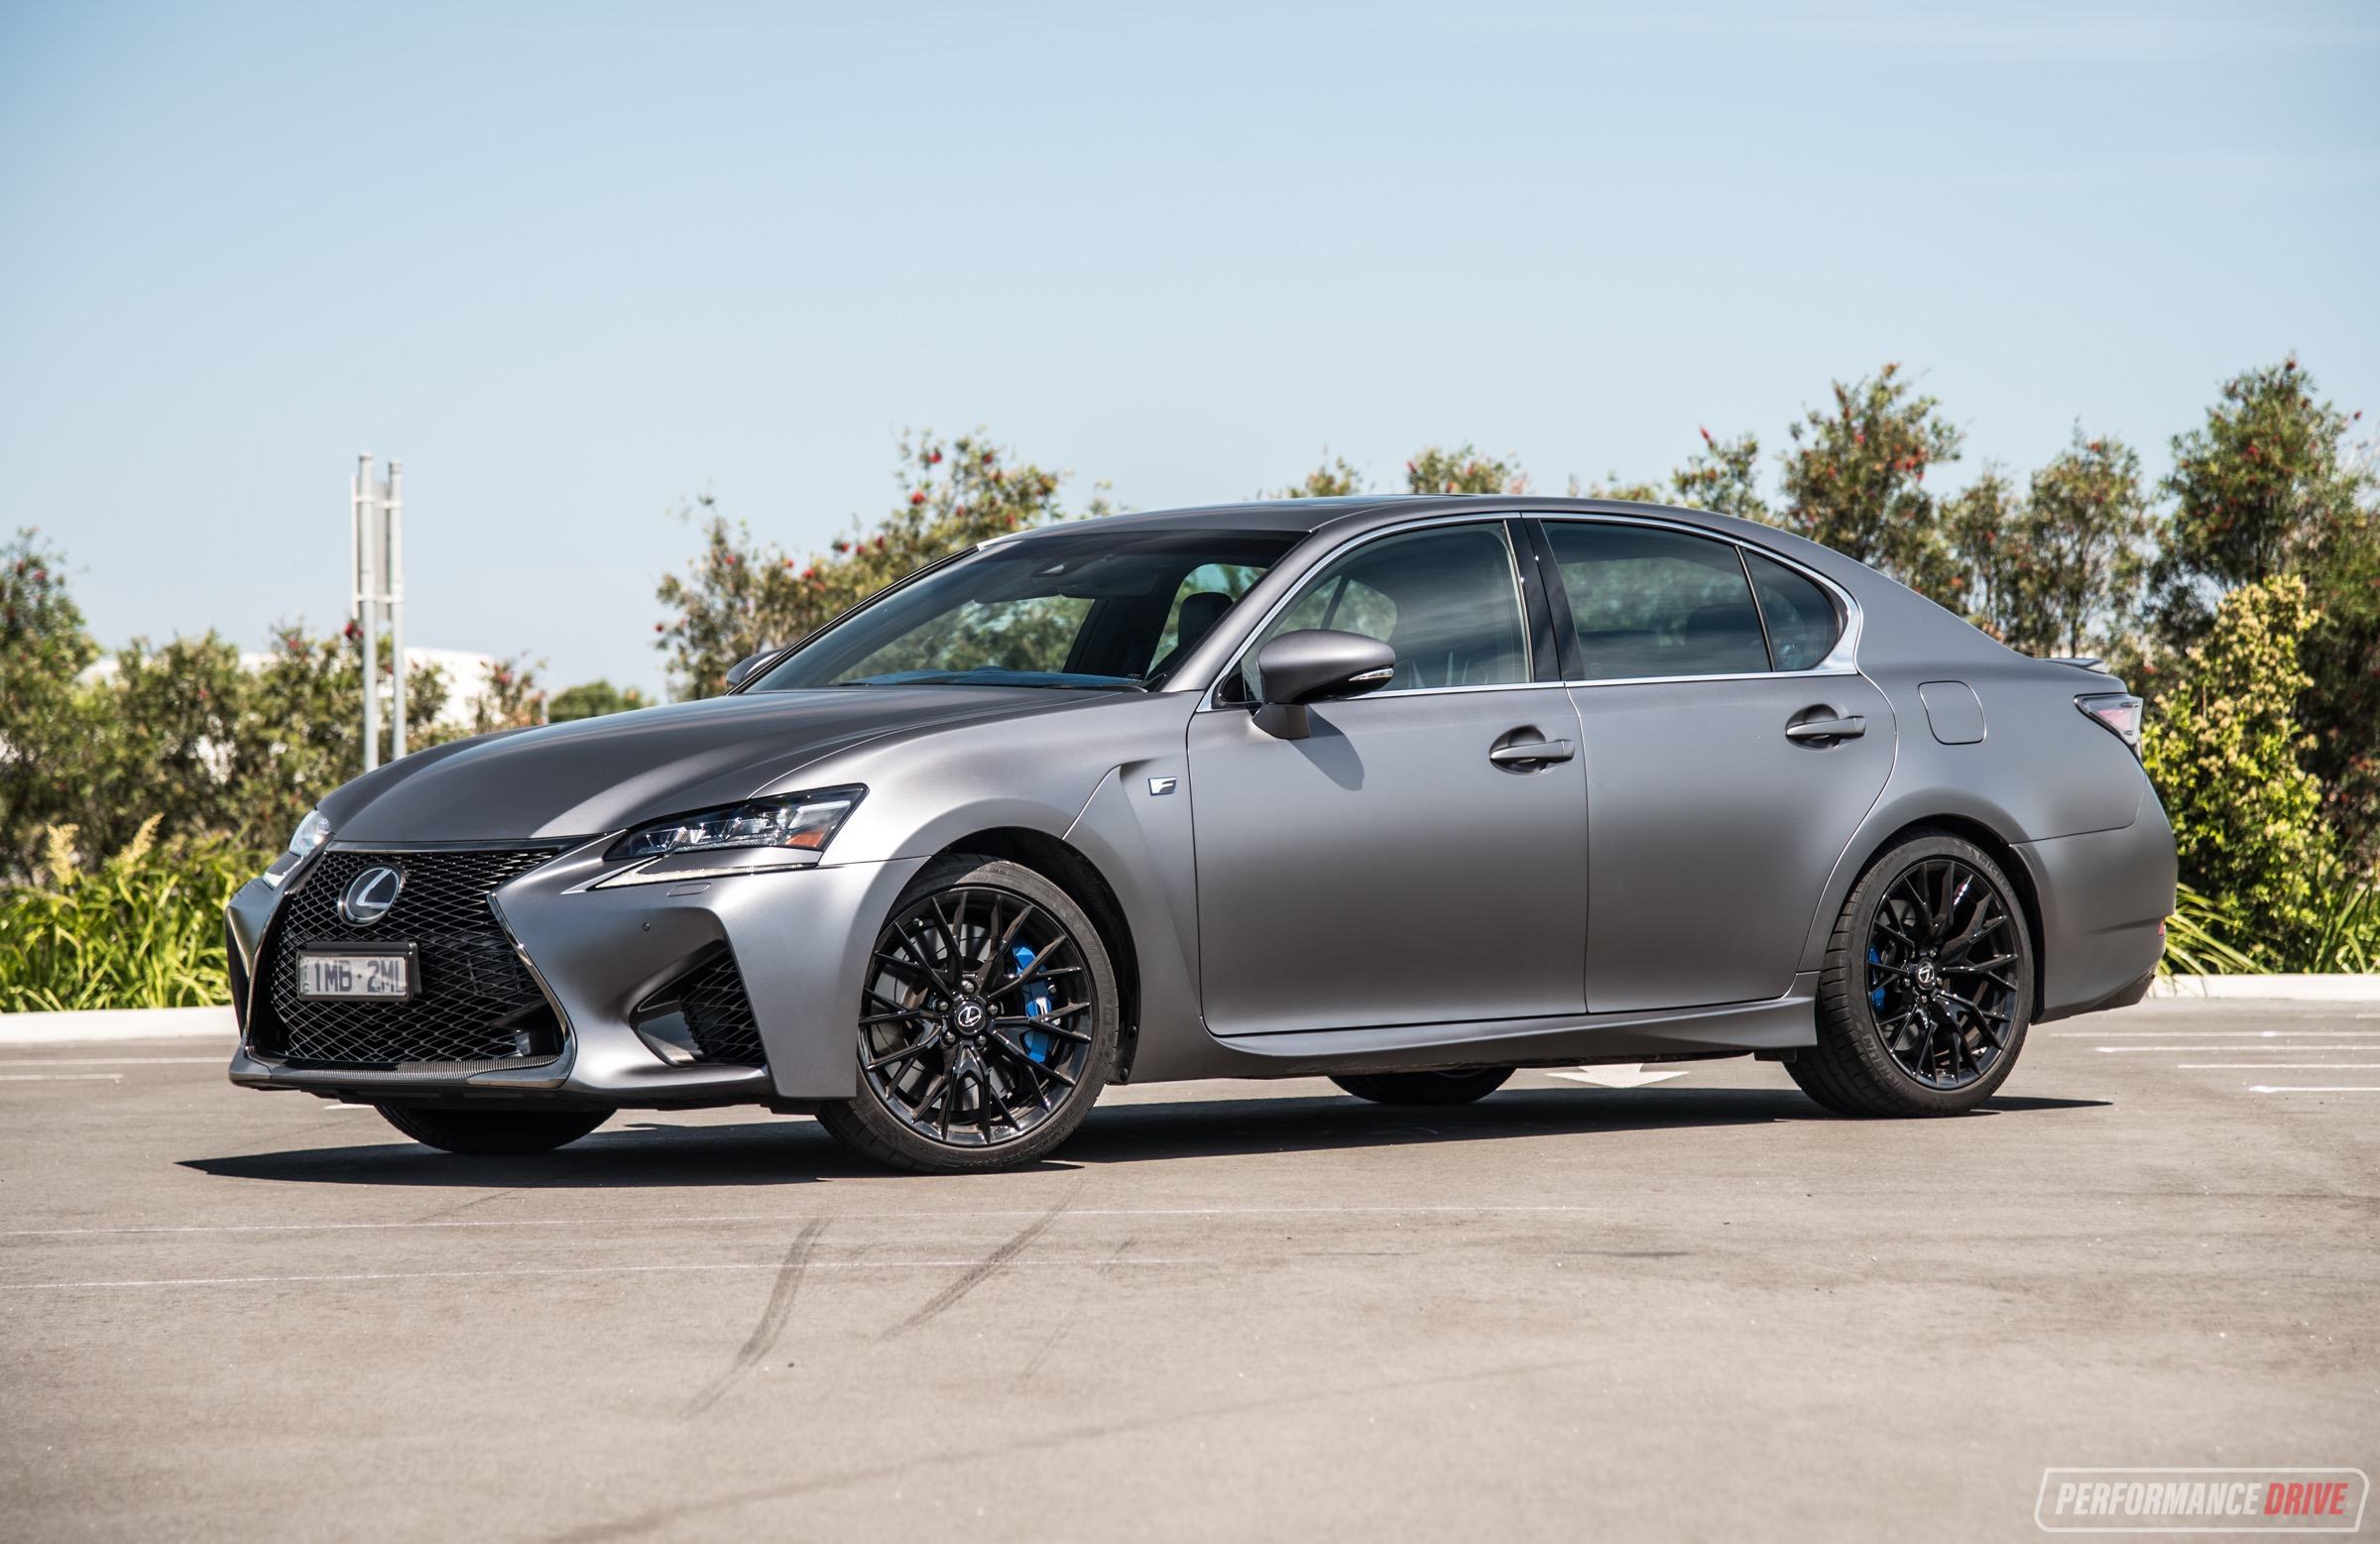 Lexus Gs F >> 2018 Lexus Gs F 10th Anniversary Edition Review Video